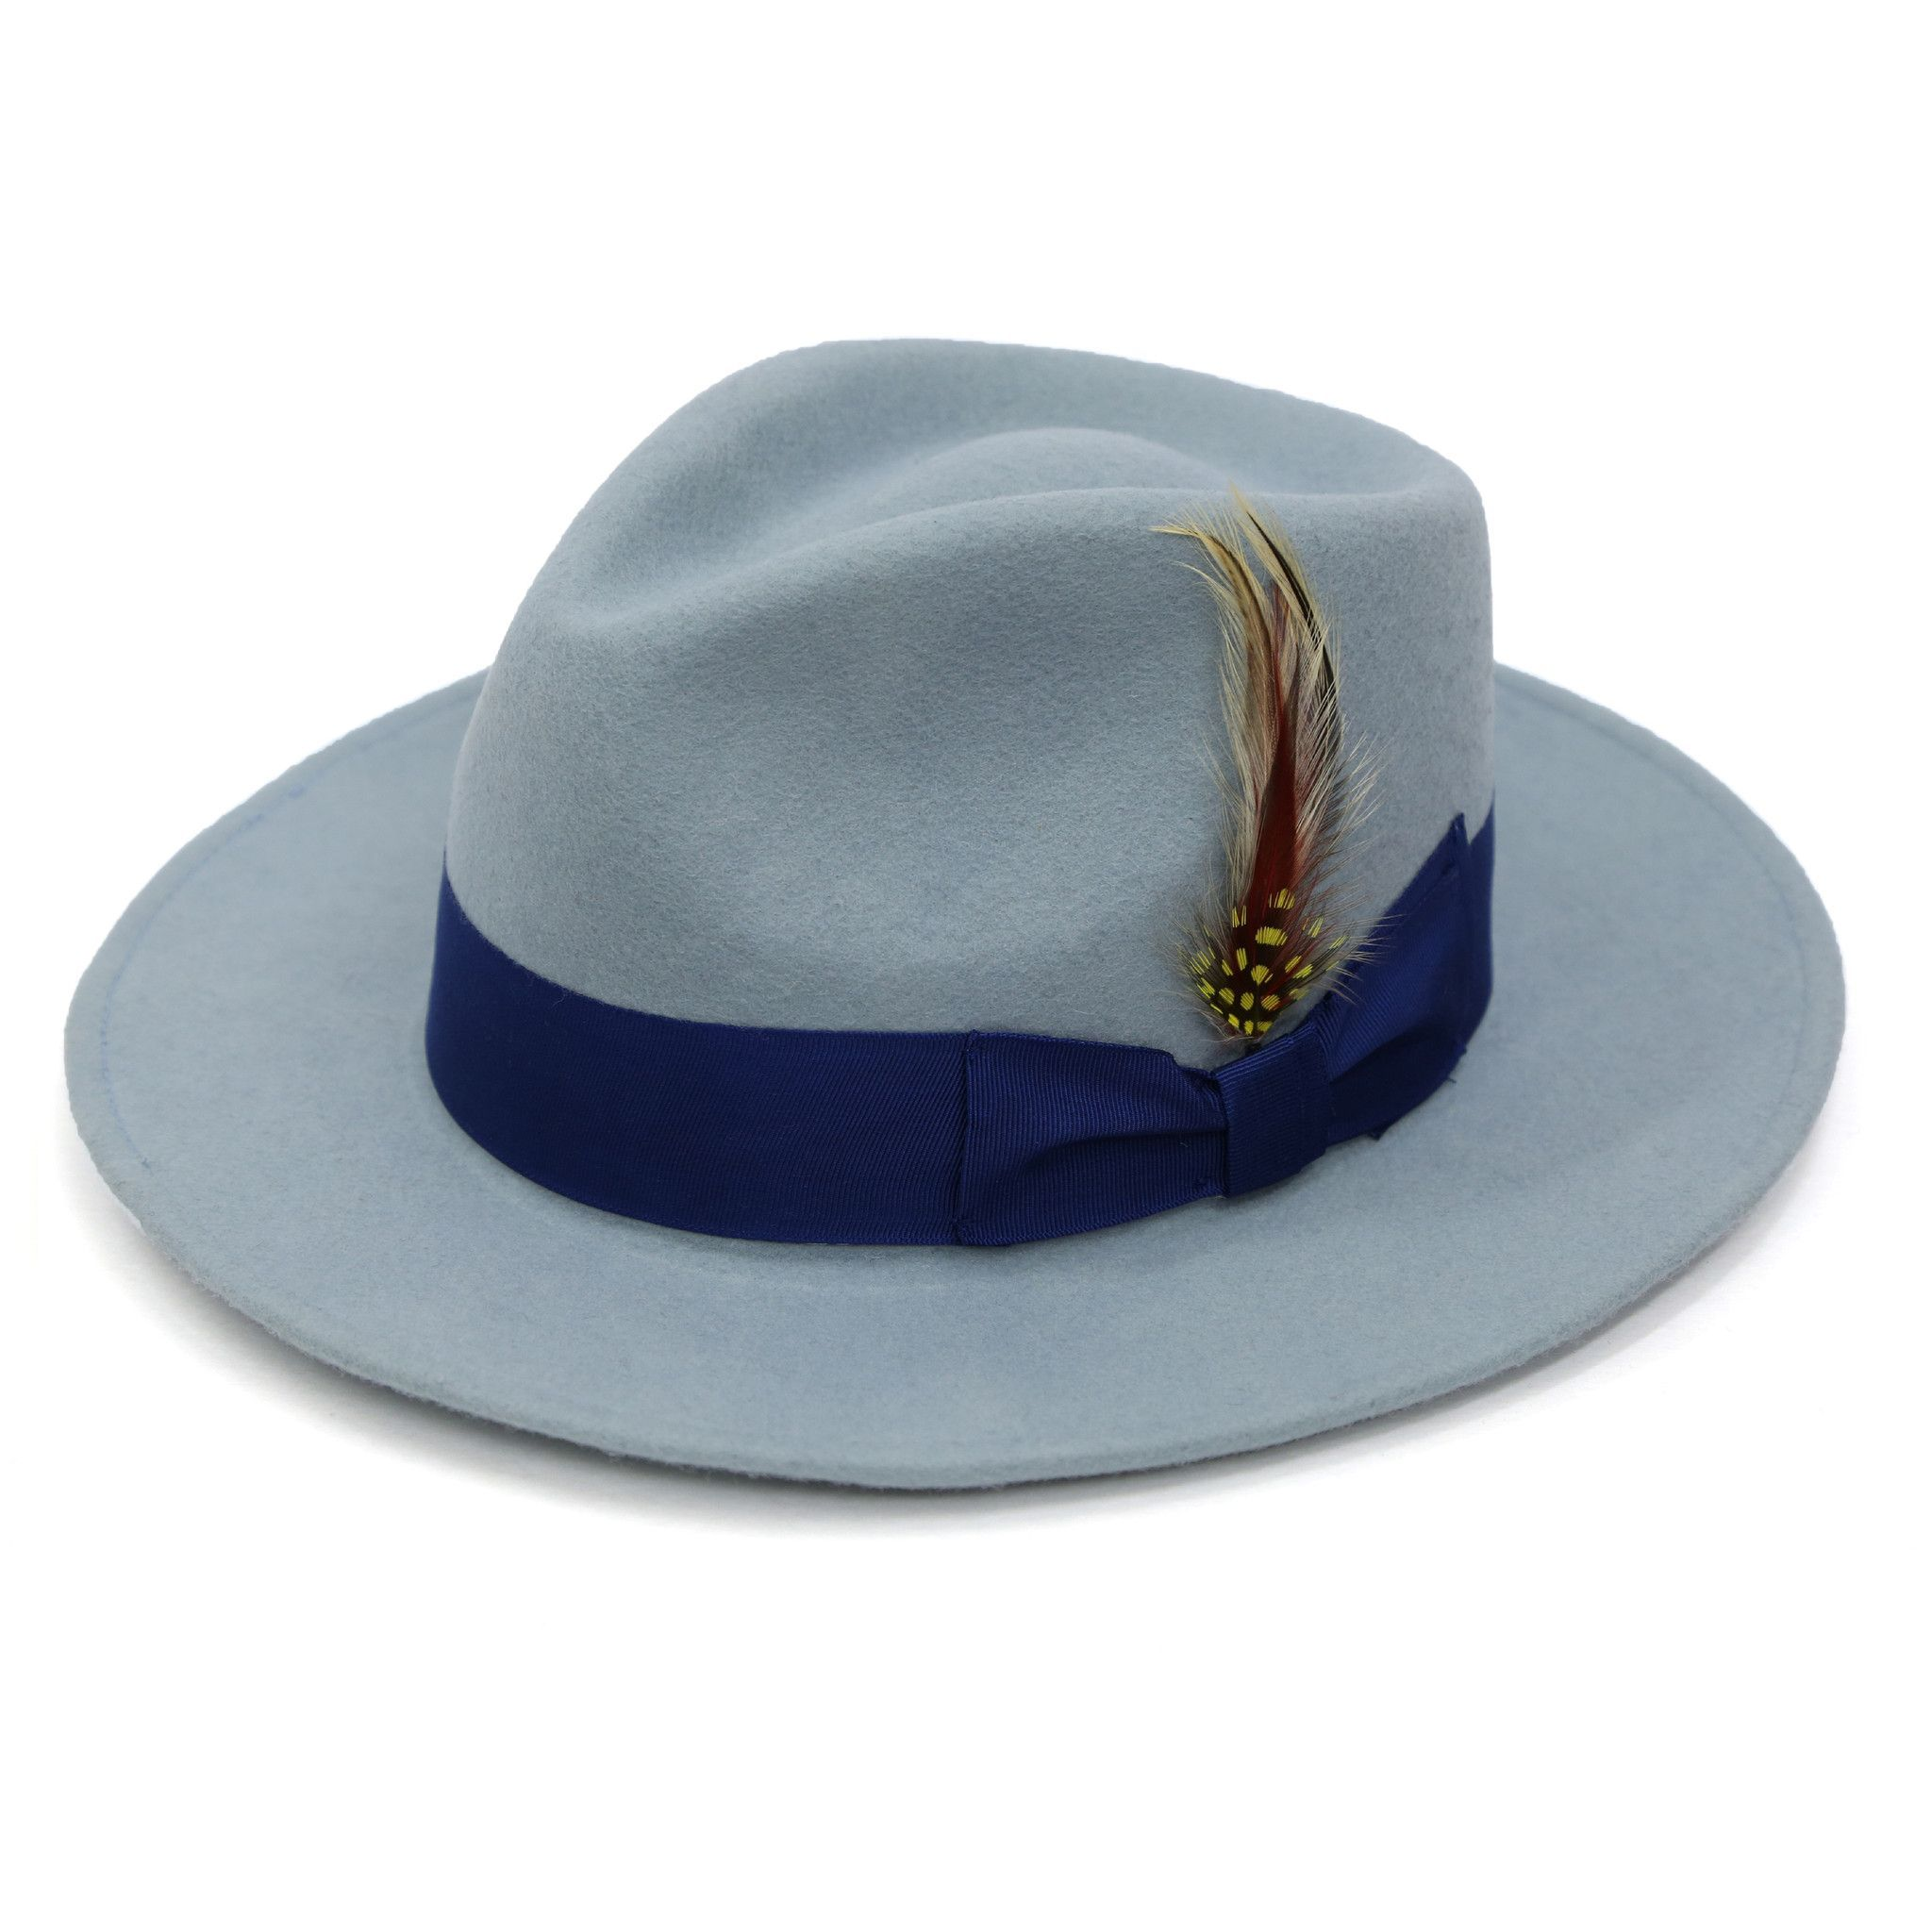 5019bf77a58c0 Premium Wool Fedora Hat - Sky   Royal Blue